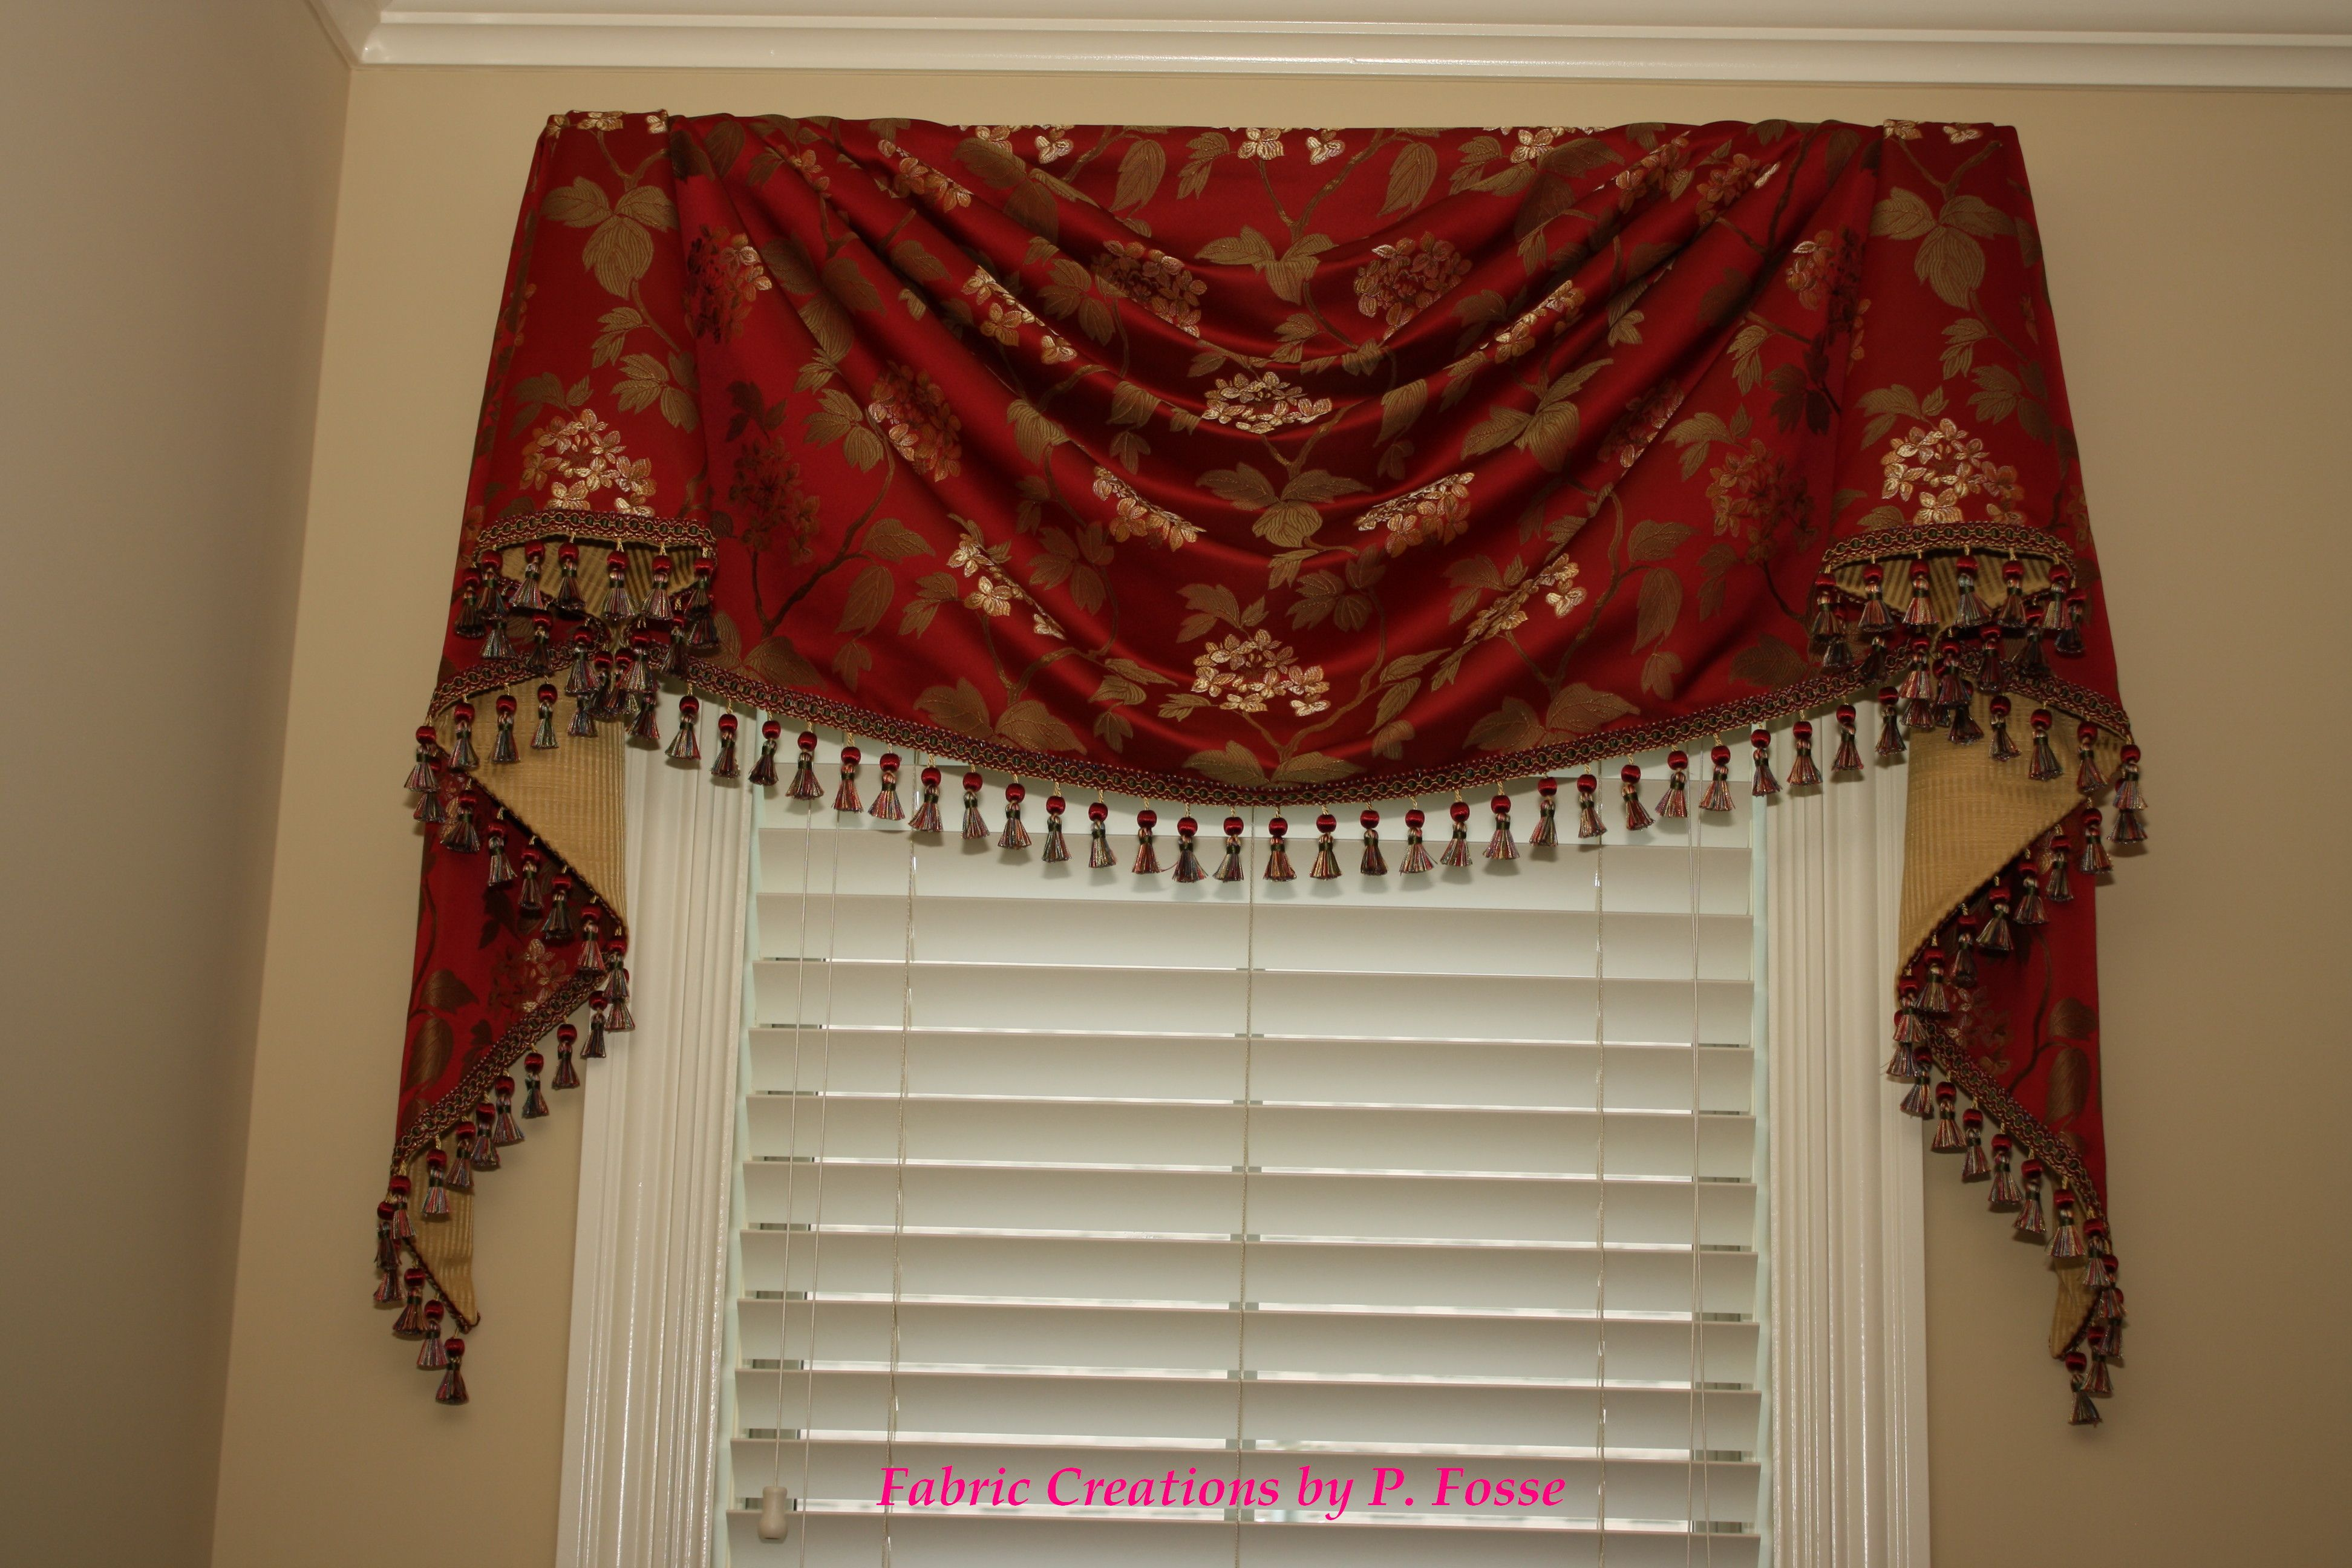 M 39 Fay 39 S Empire Swag By Fabric Creations Curtains Swags Jabots